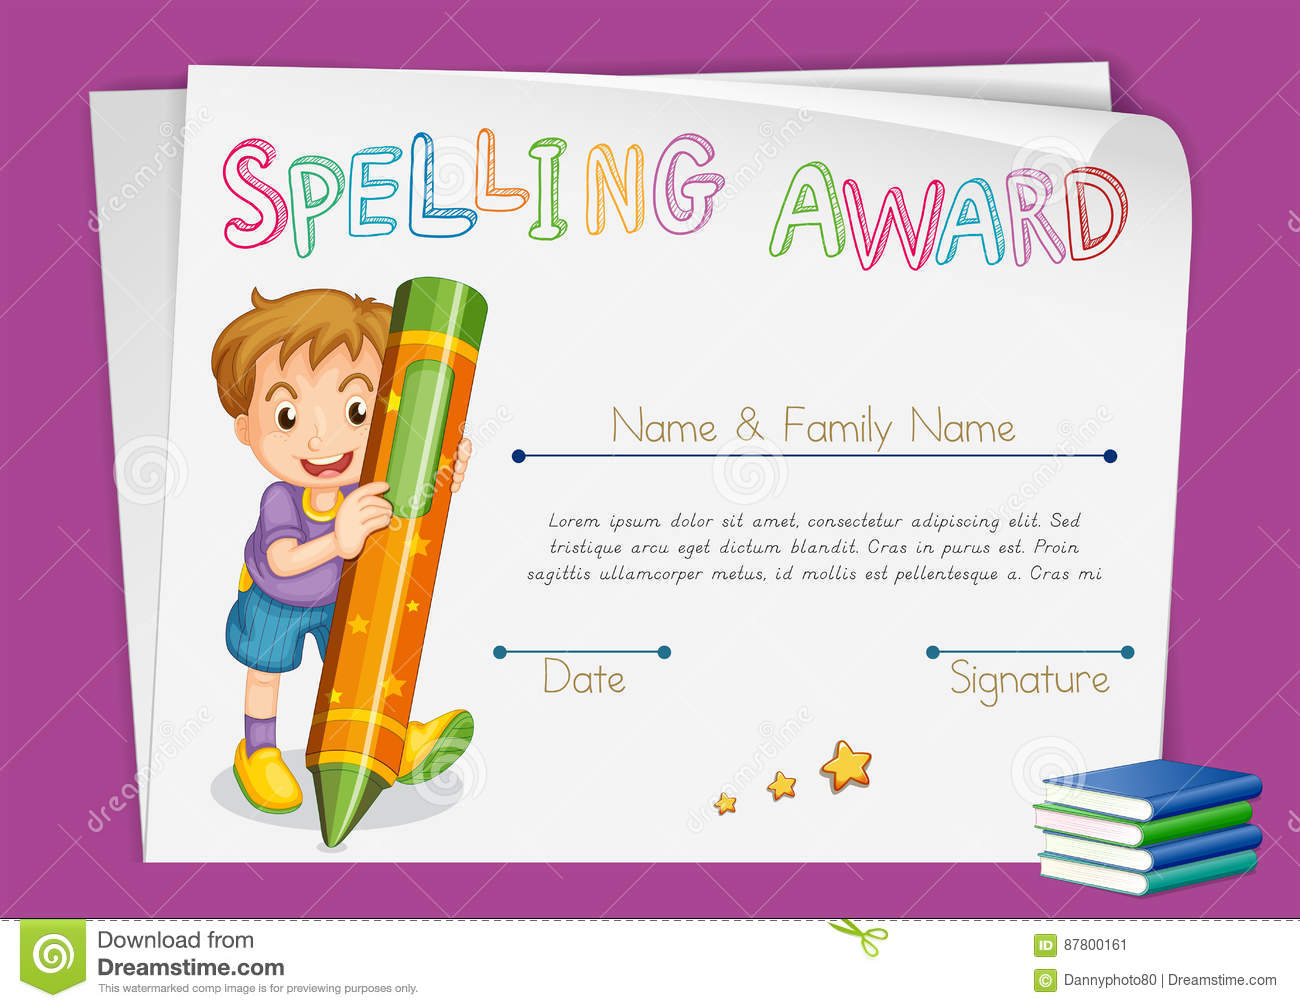 Spelling Award Certificate Template With Kids And Crayon